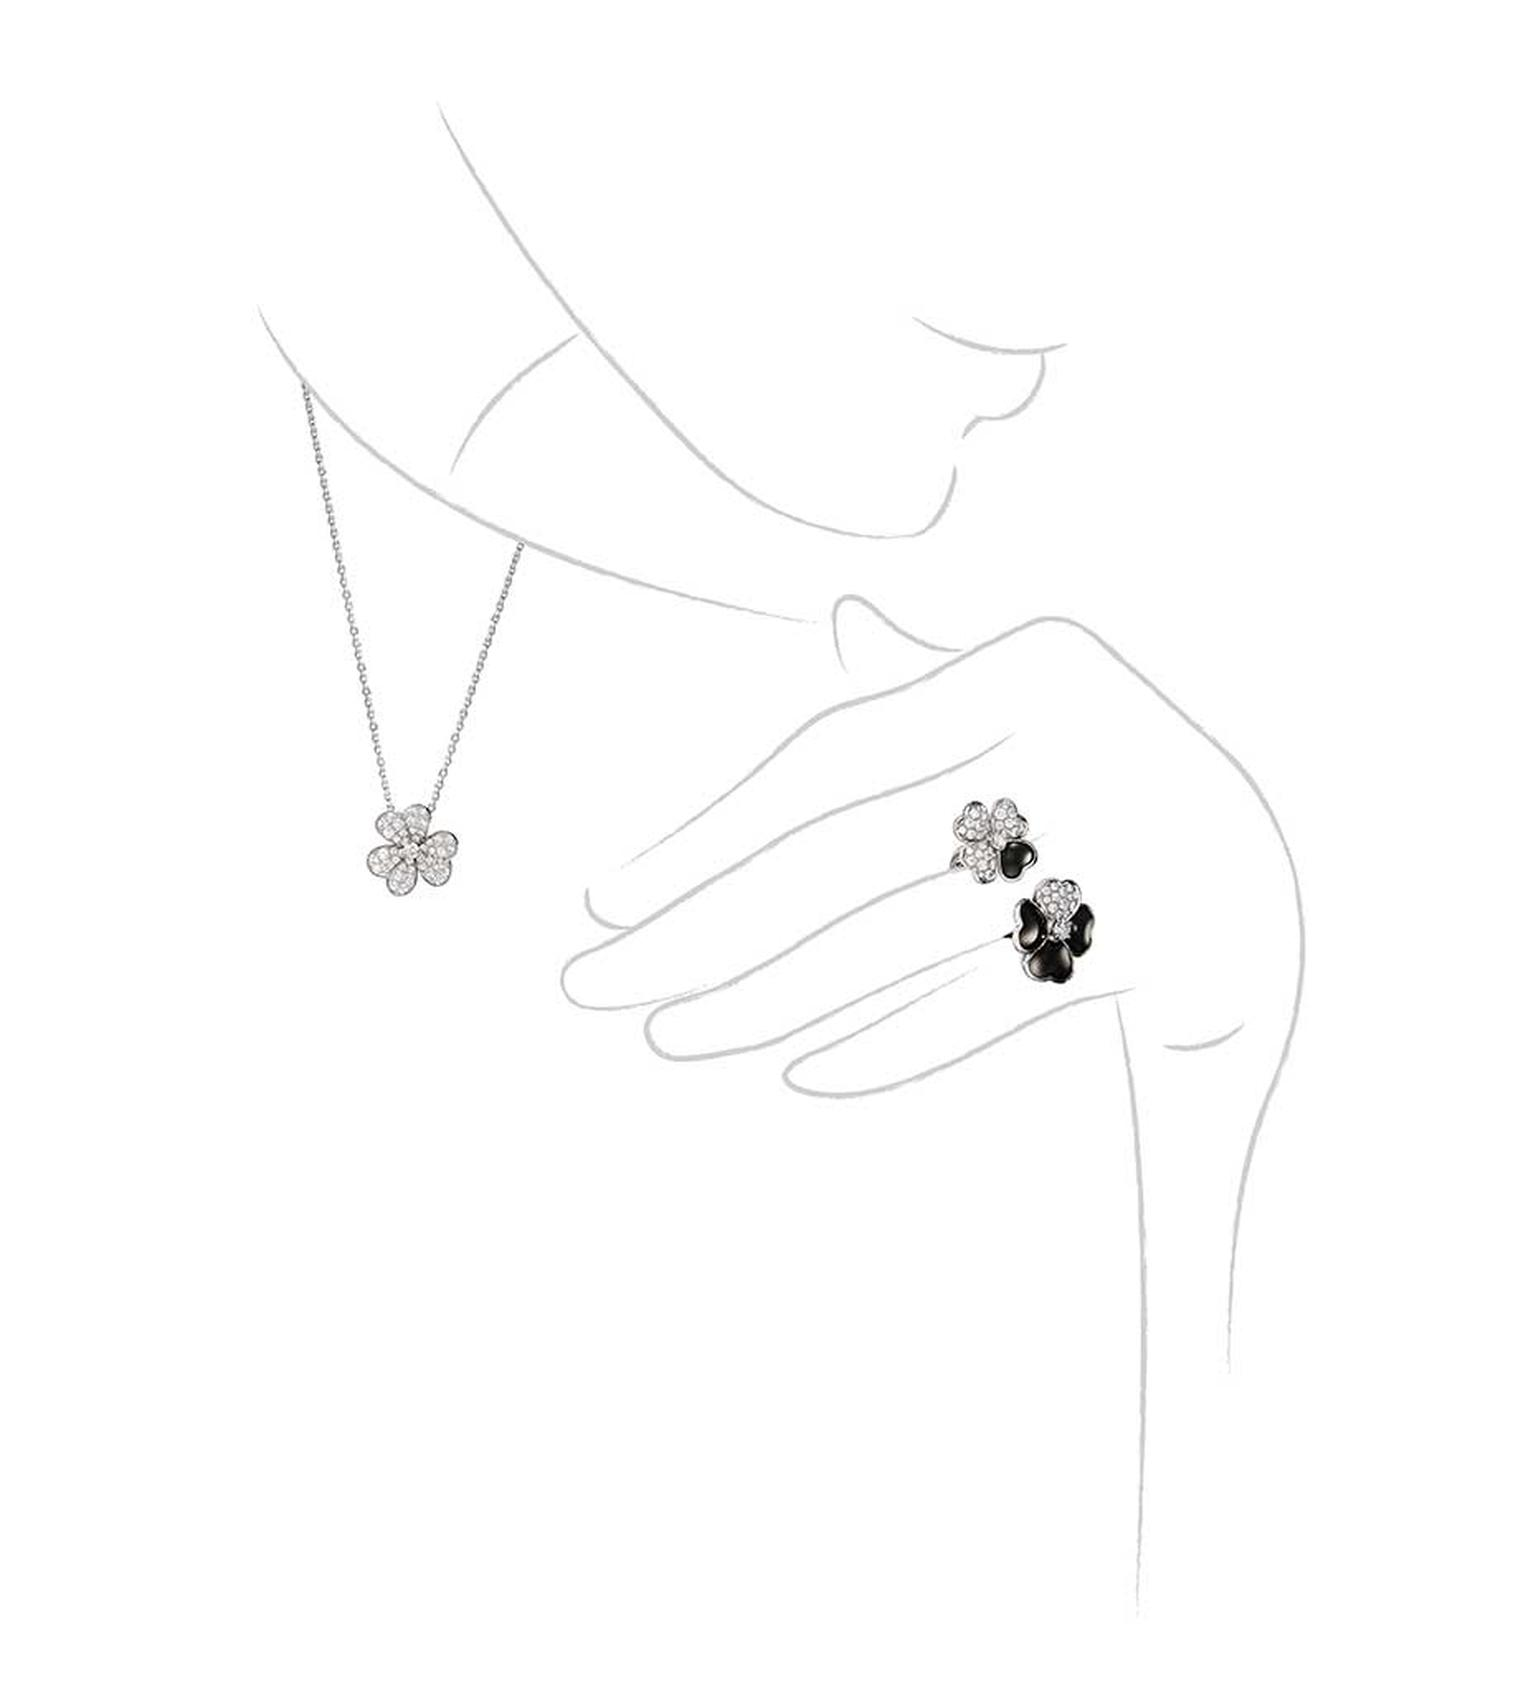 Van Cleef & Arpels Cosmos Between the Finger onyx and diamond ring and Cosmos diamond necklace